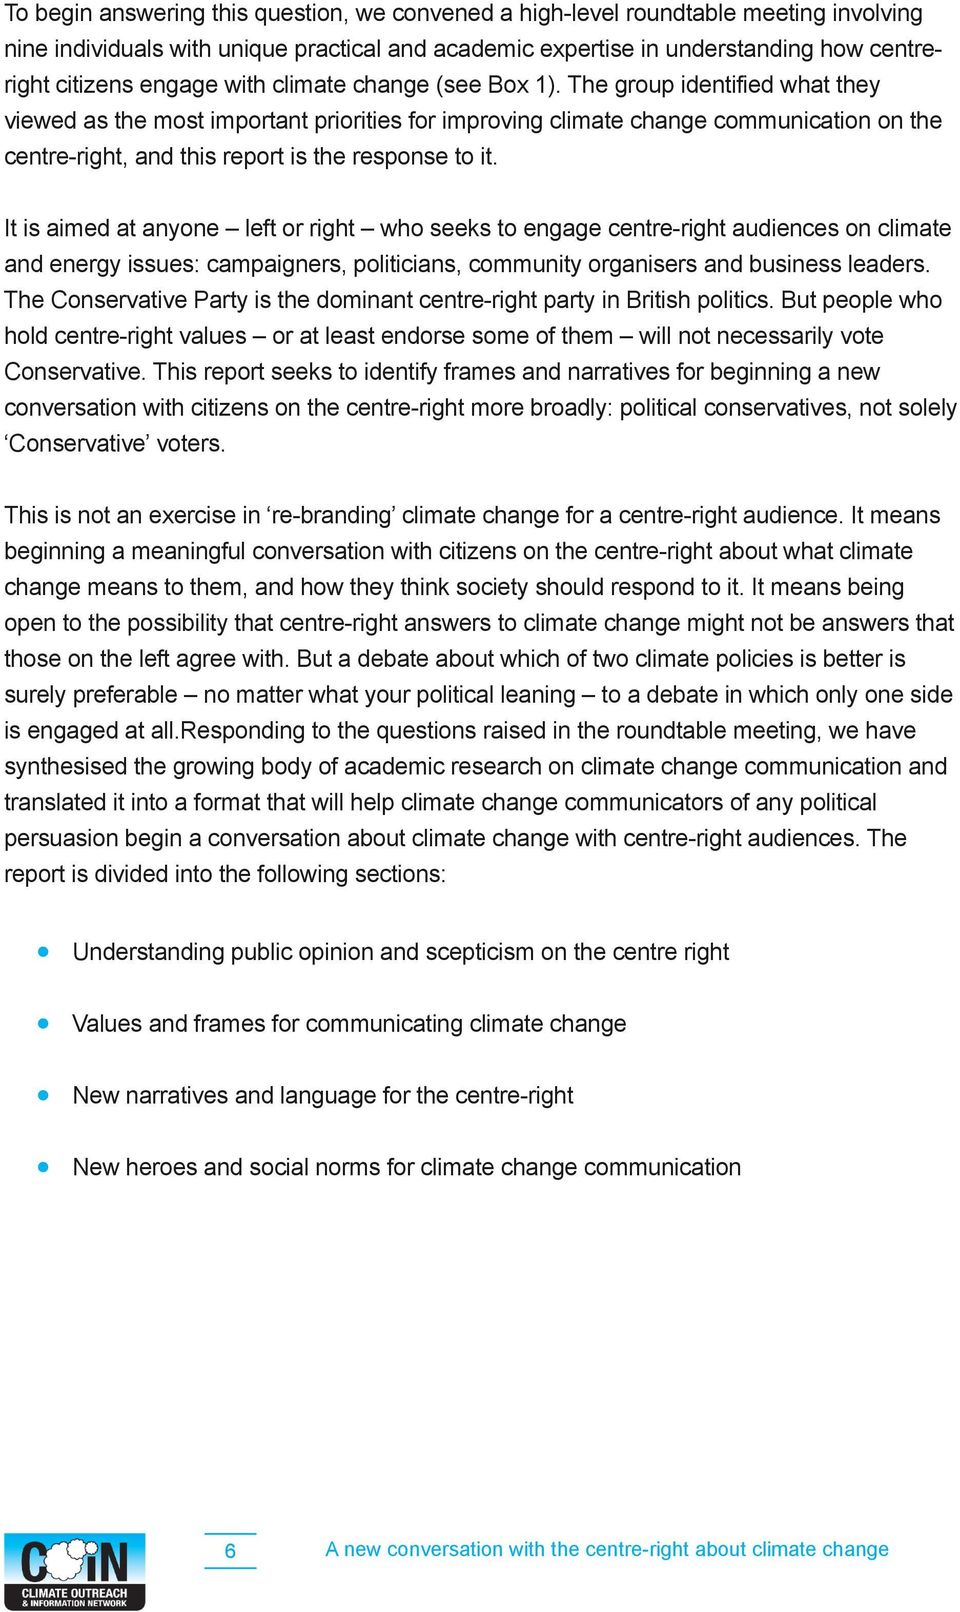 The group identified what they viewed as the most important priorities for improving climate change communication on the centre-right, and this report is the response to it.